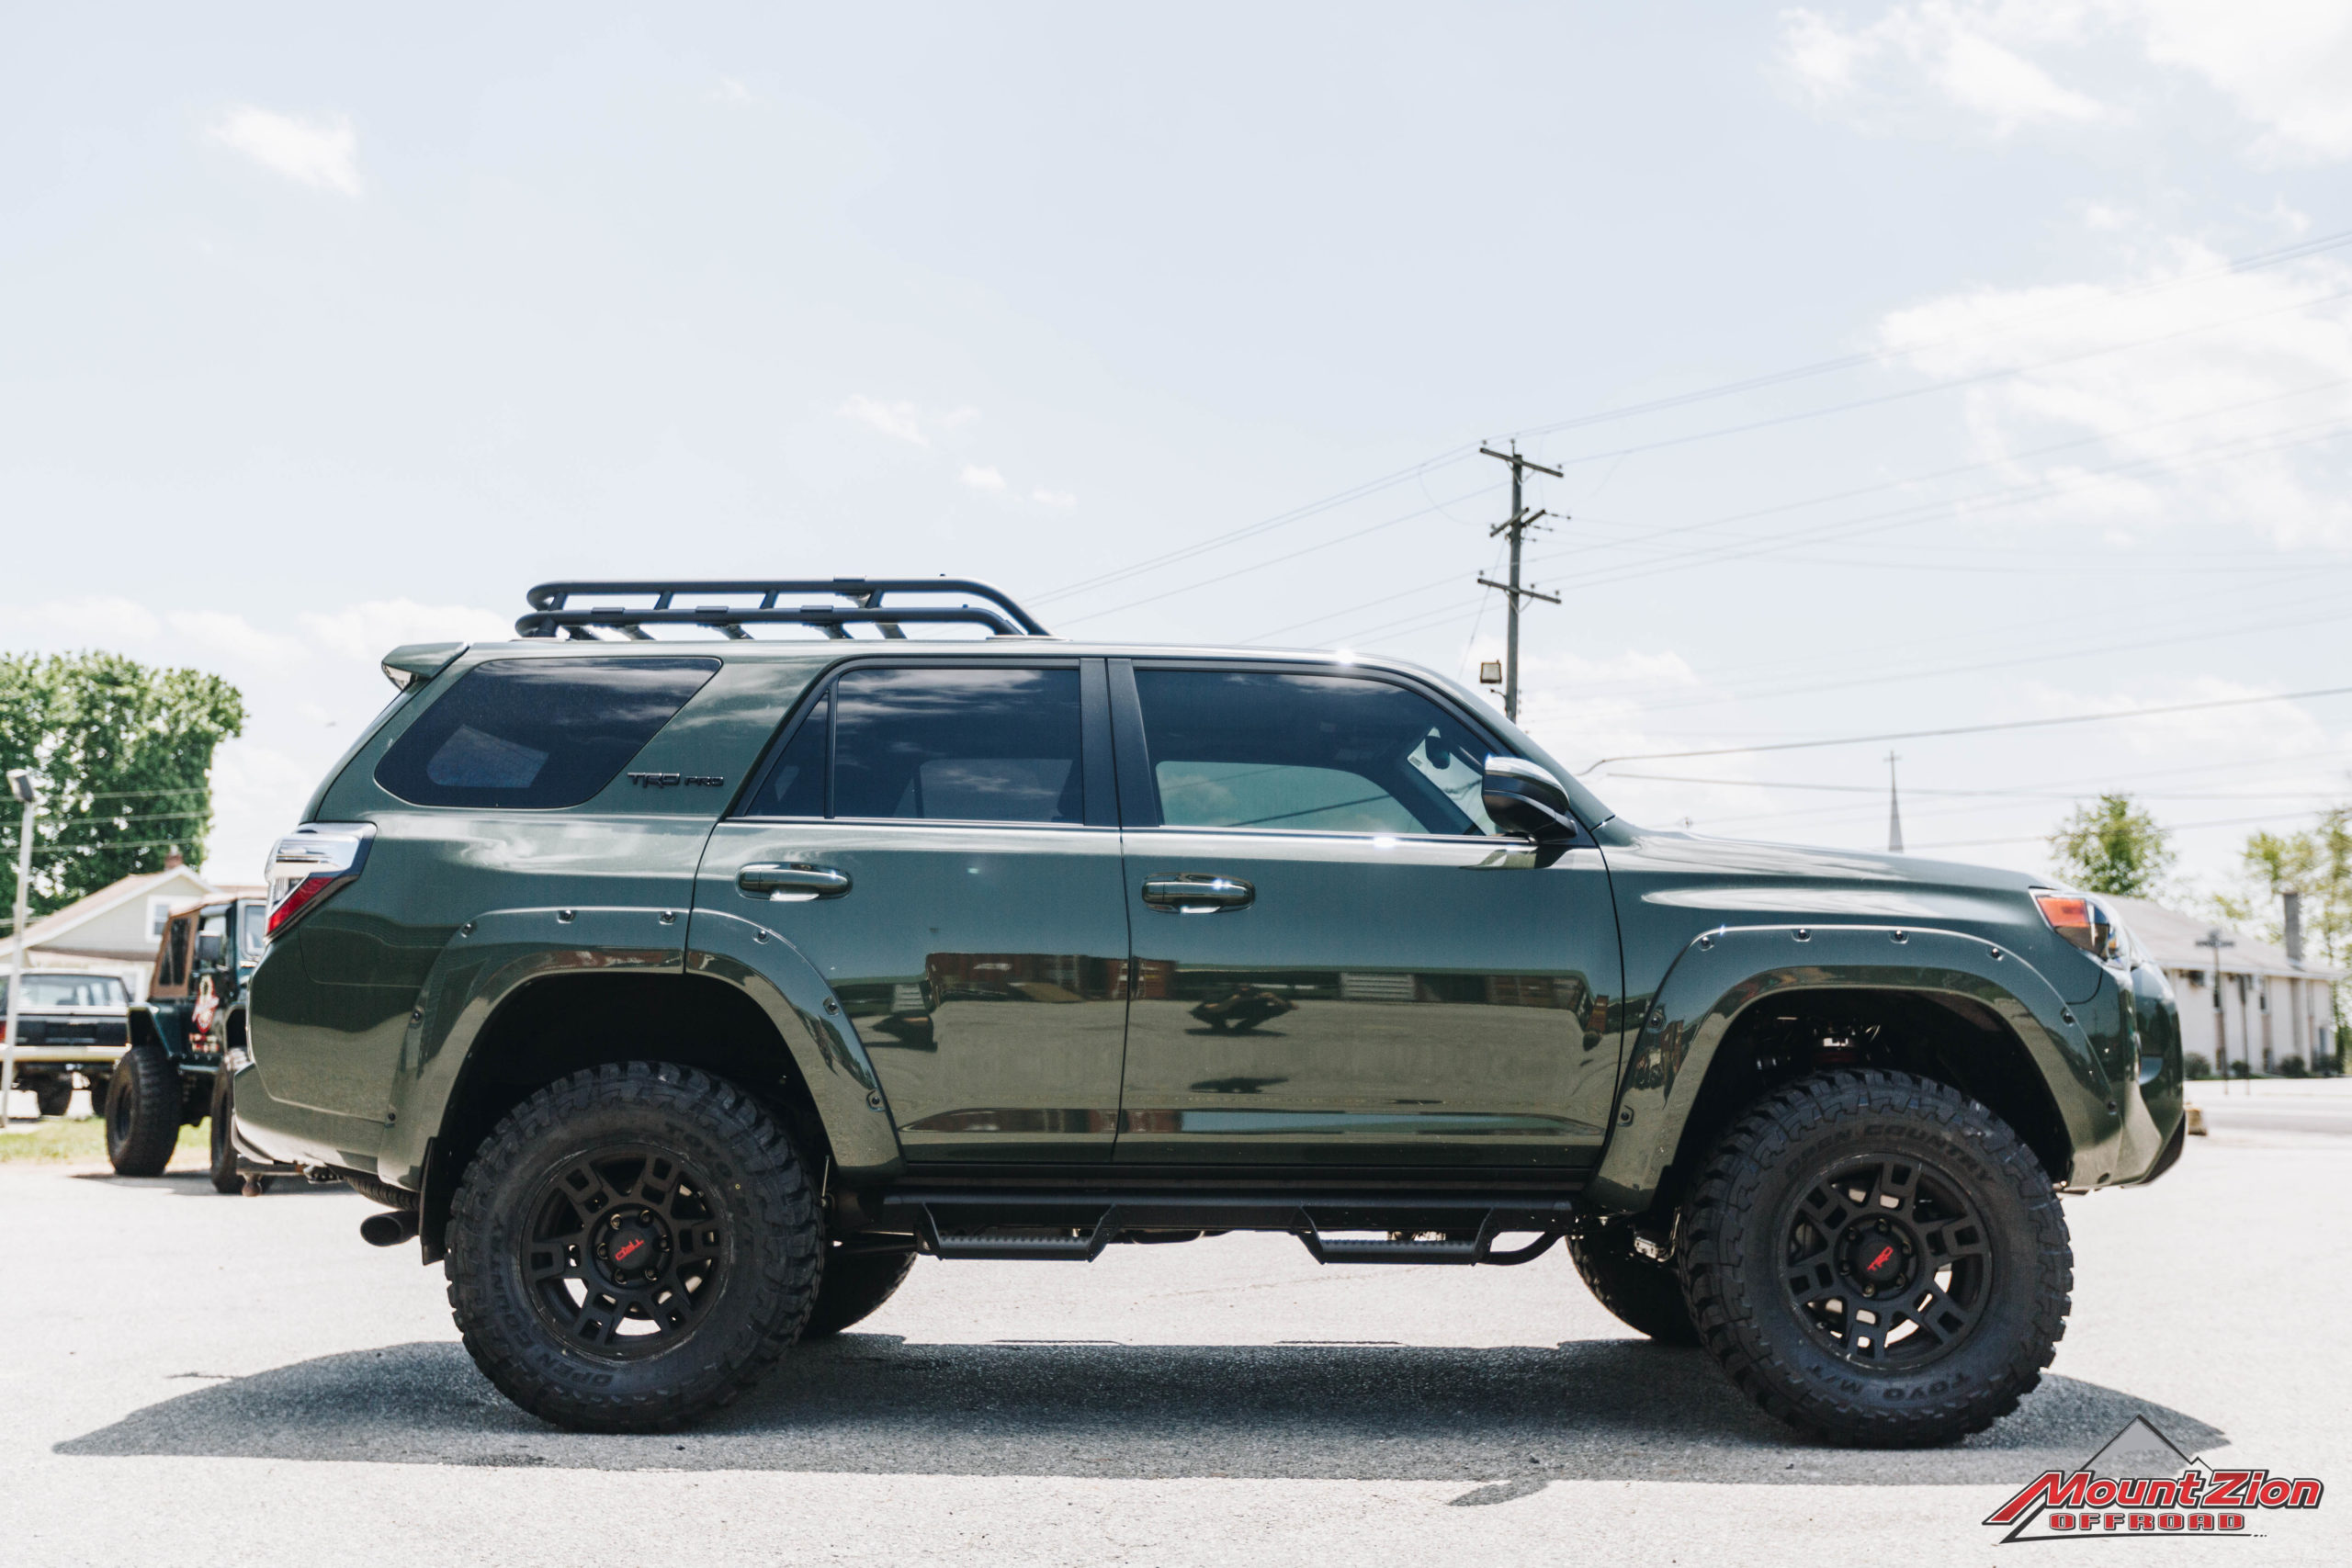 2020 Toyota 4runner Trd Pro Mount Zion Offroad